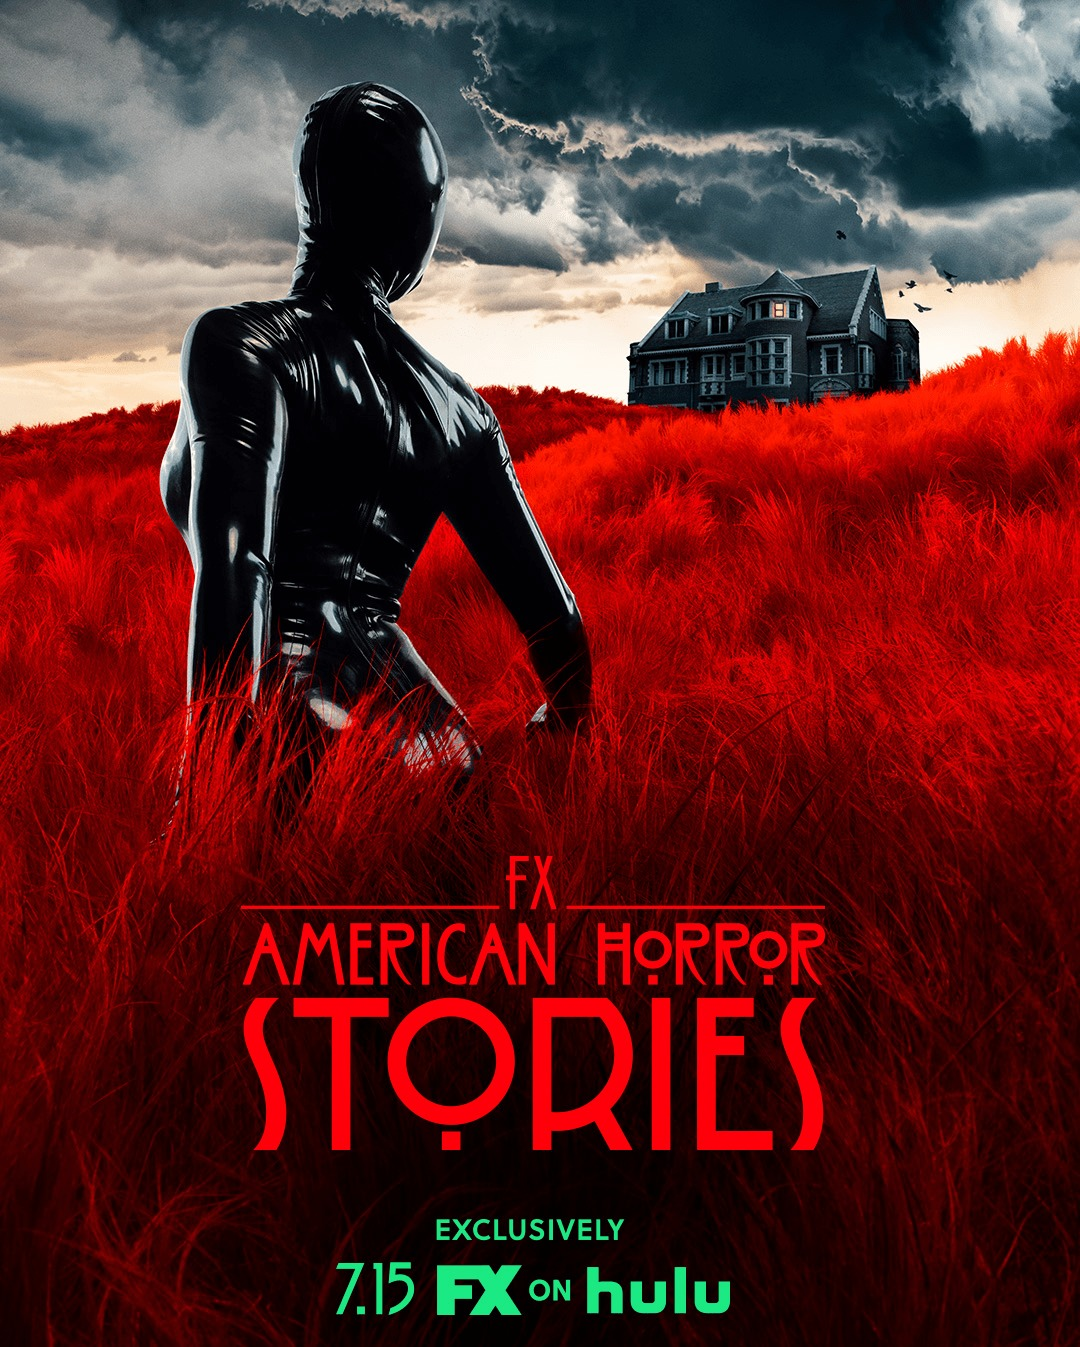 american horror stories poster 1